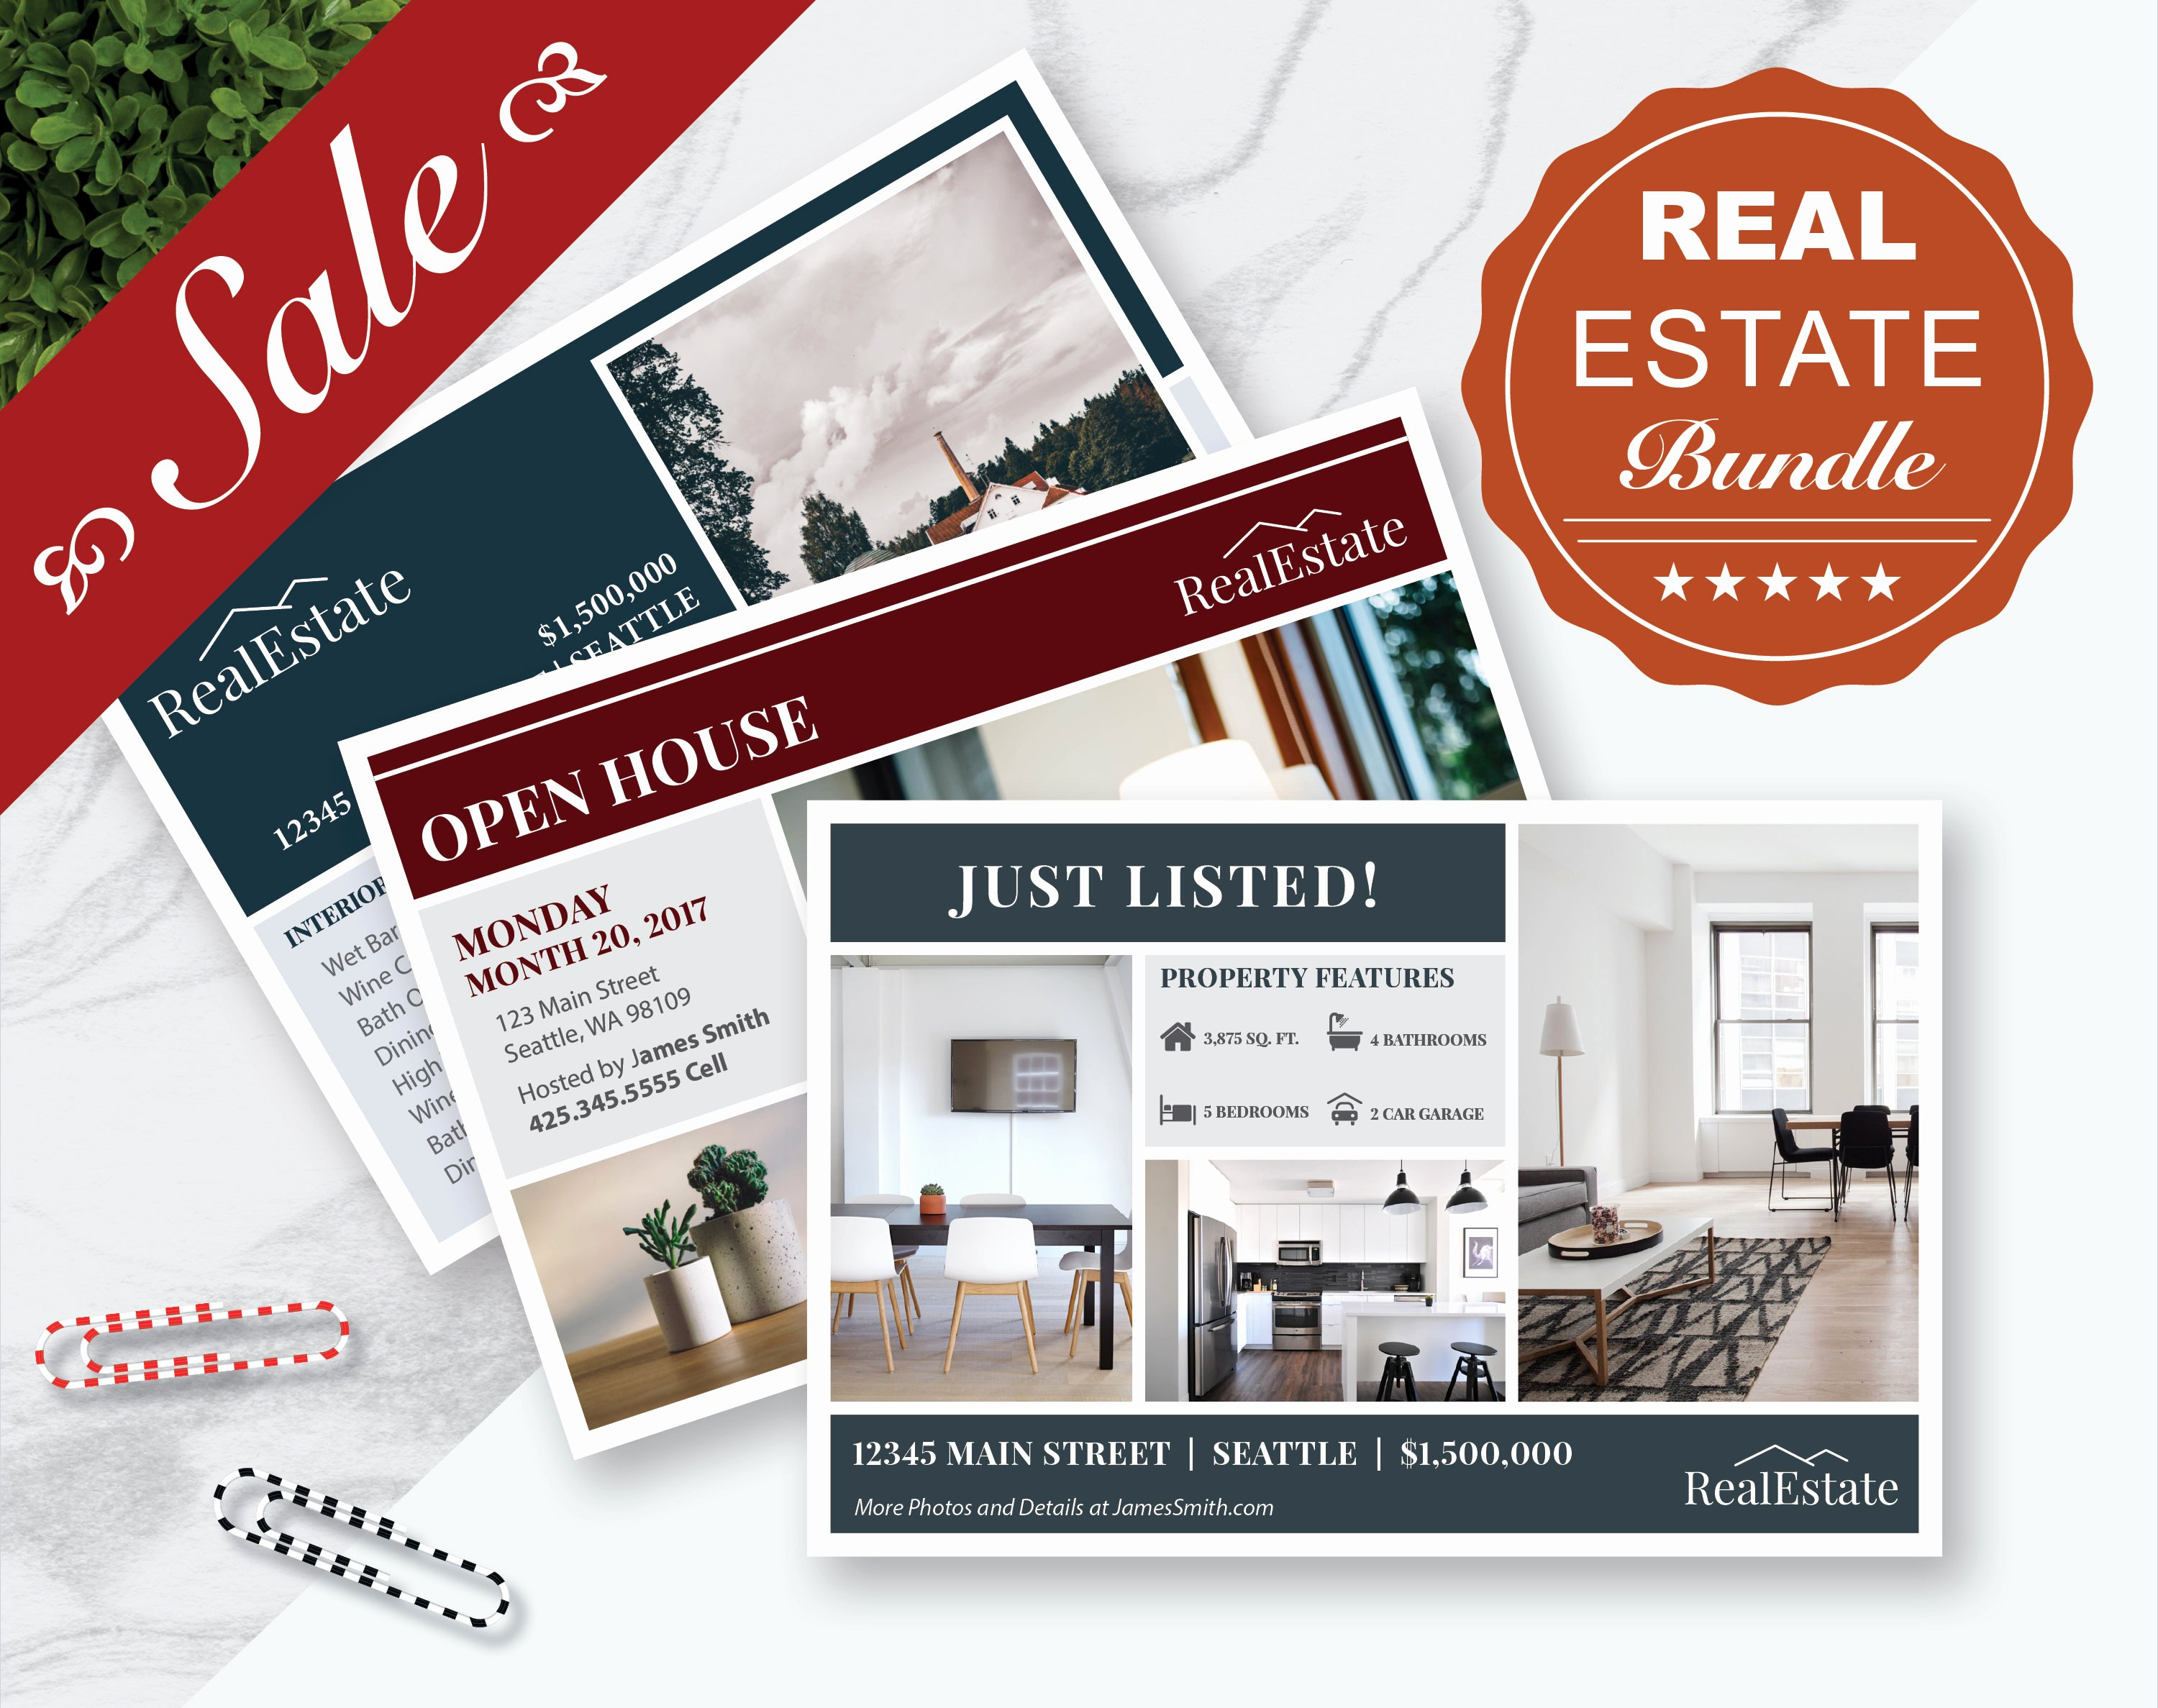 Real Estate Postcards Templates Awesome Real Estate Marketing Postcards Bundle 3 Postcard Templates